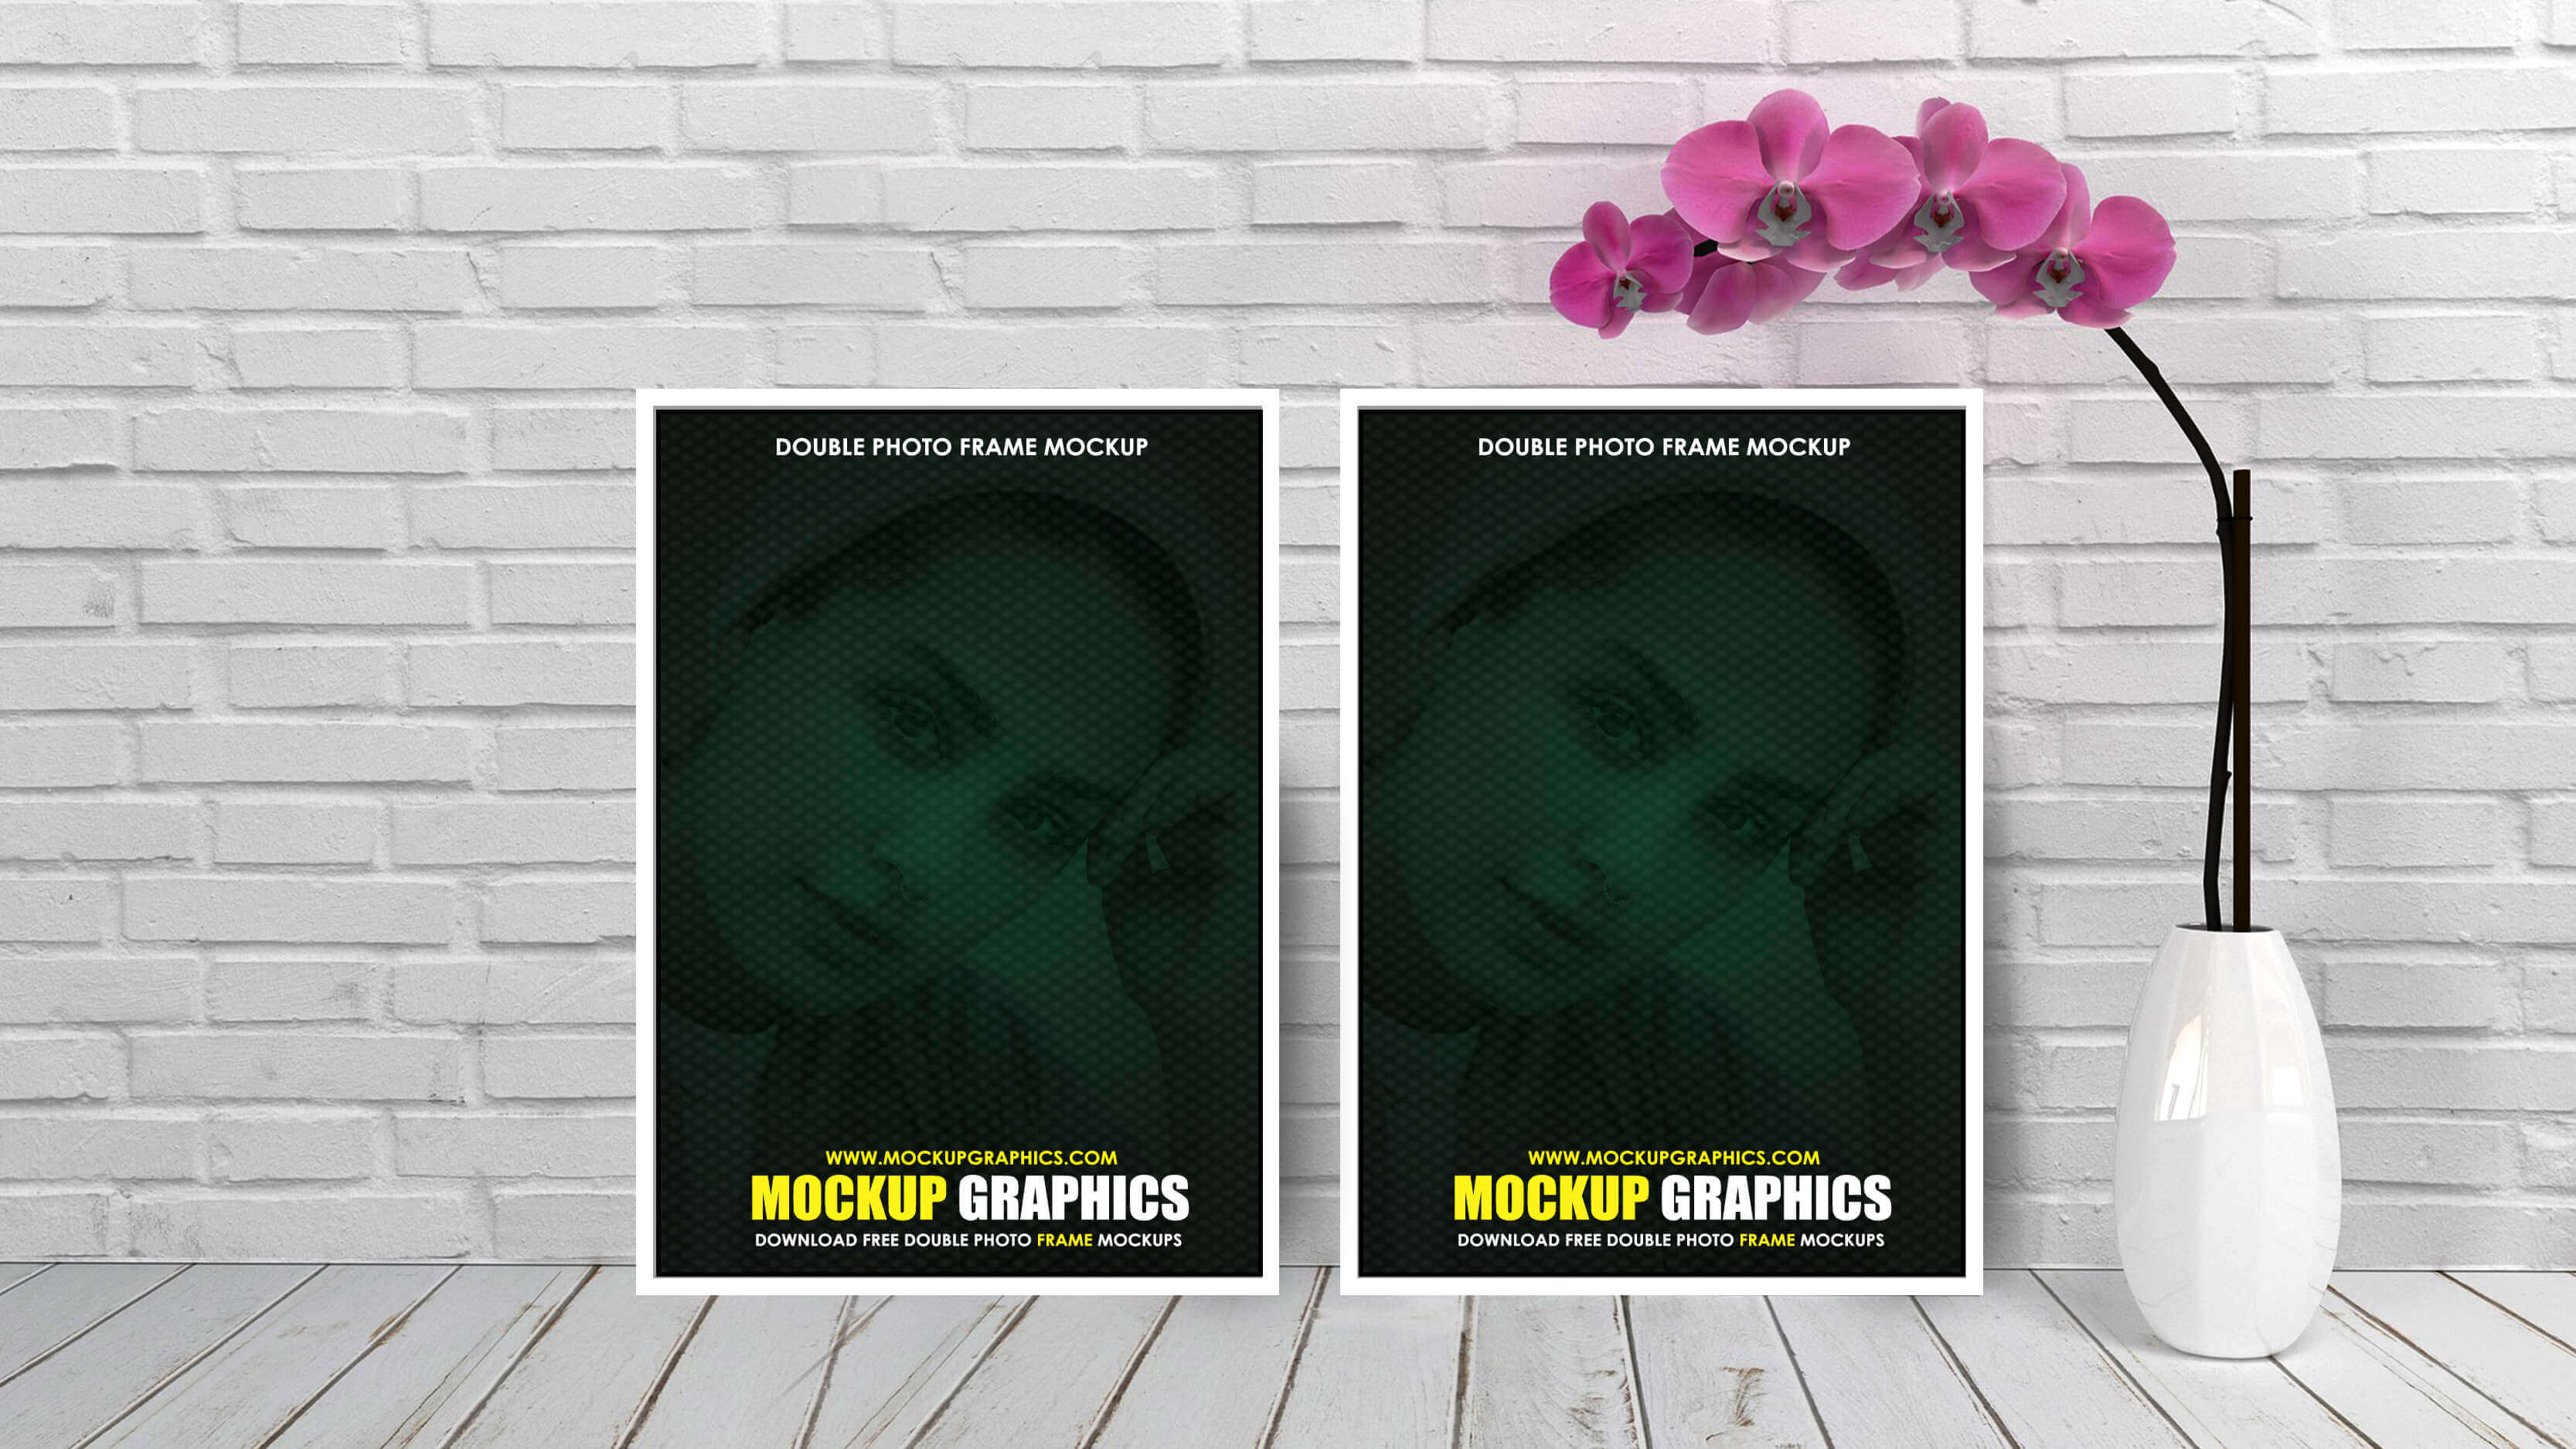 double photo frame mockup - www.mockupgraphics.com